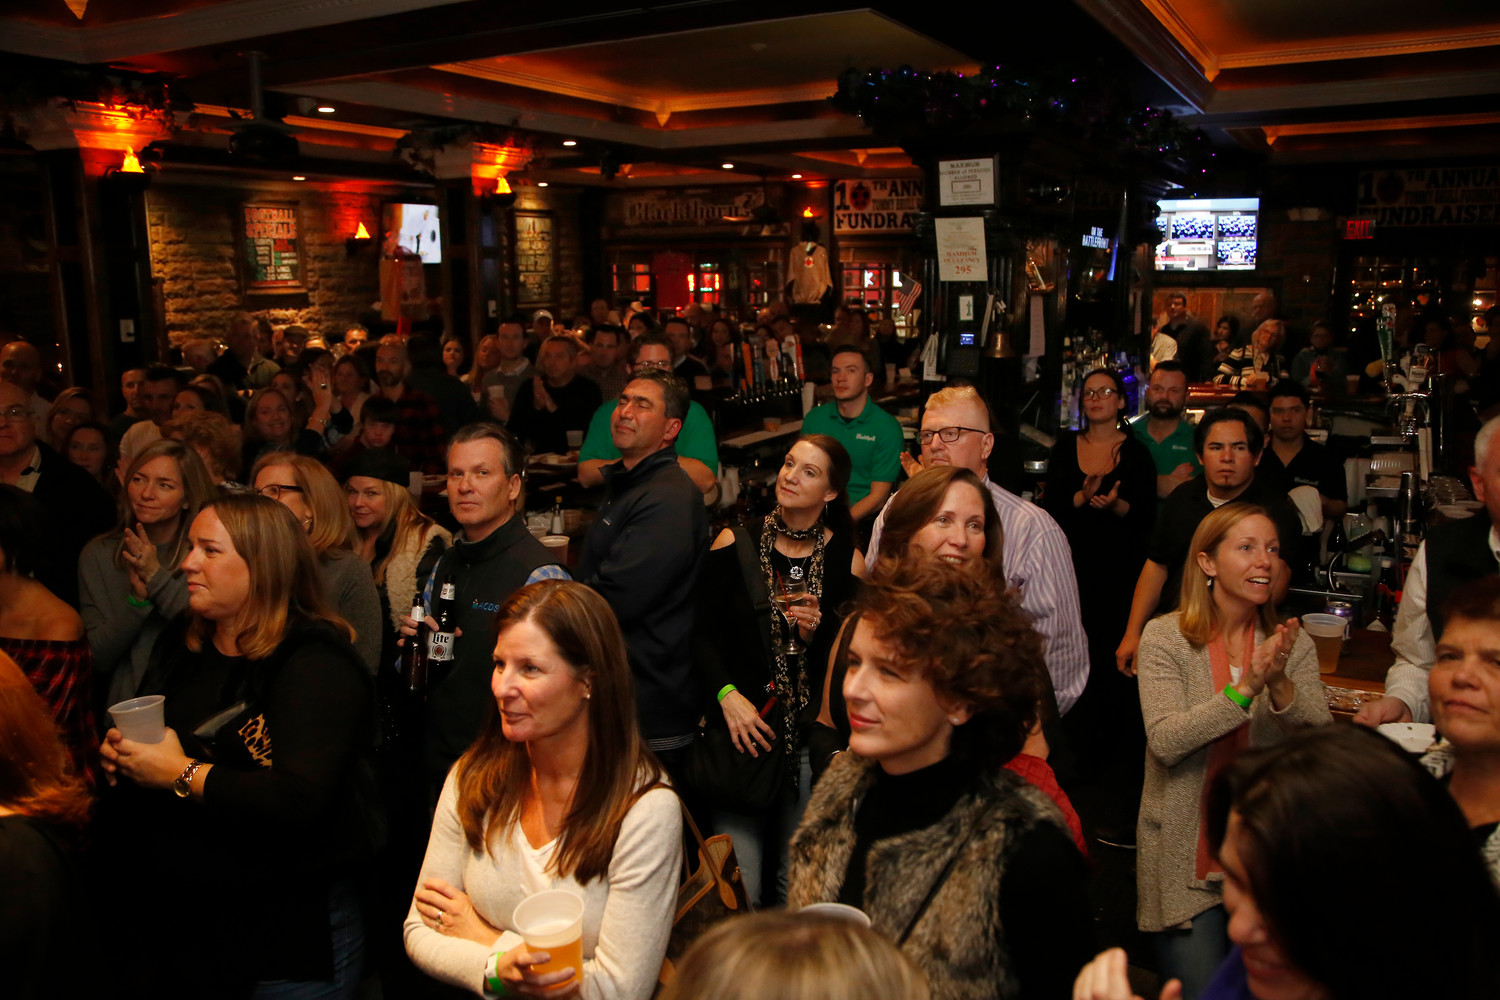 Dozens packed Rockville Centre's Cannon's Blackthorn for the event.